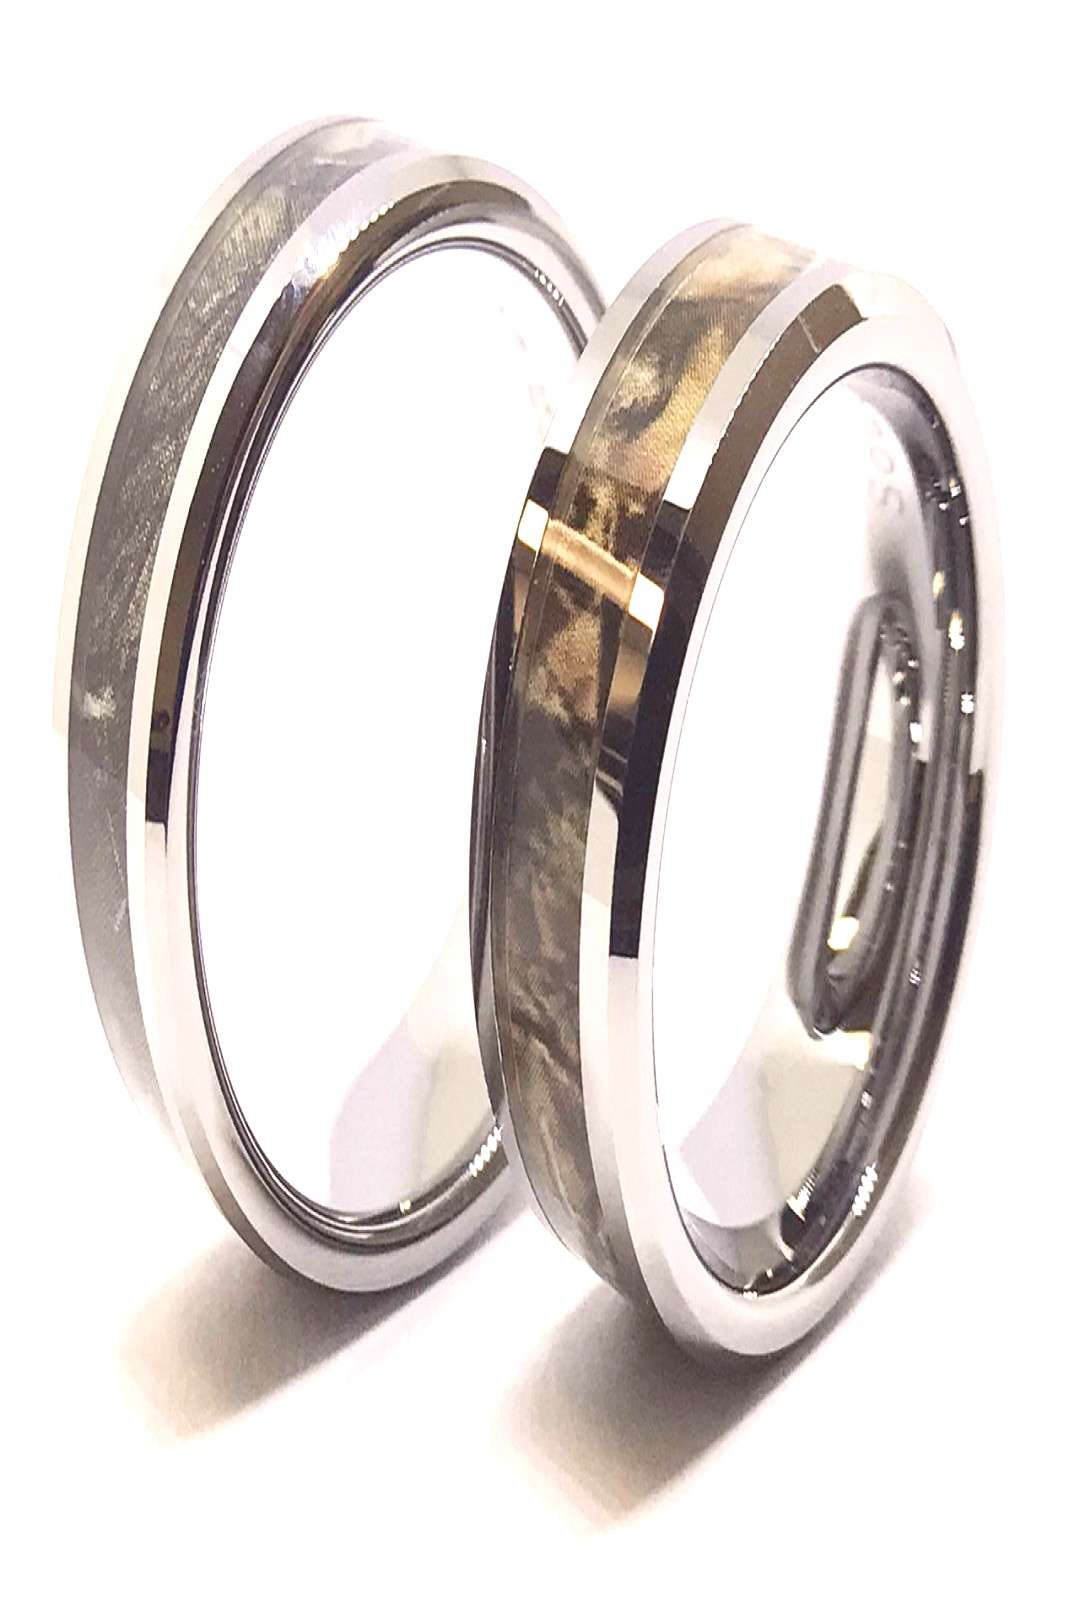 Southern Sisters Designs - Camo Couples Ring Set- His and Hers Set, $29.95 (uthernsiste...) Best P